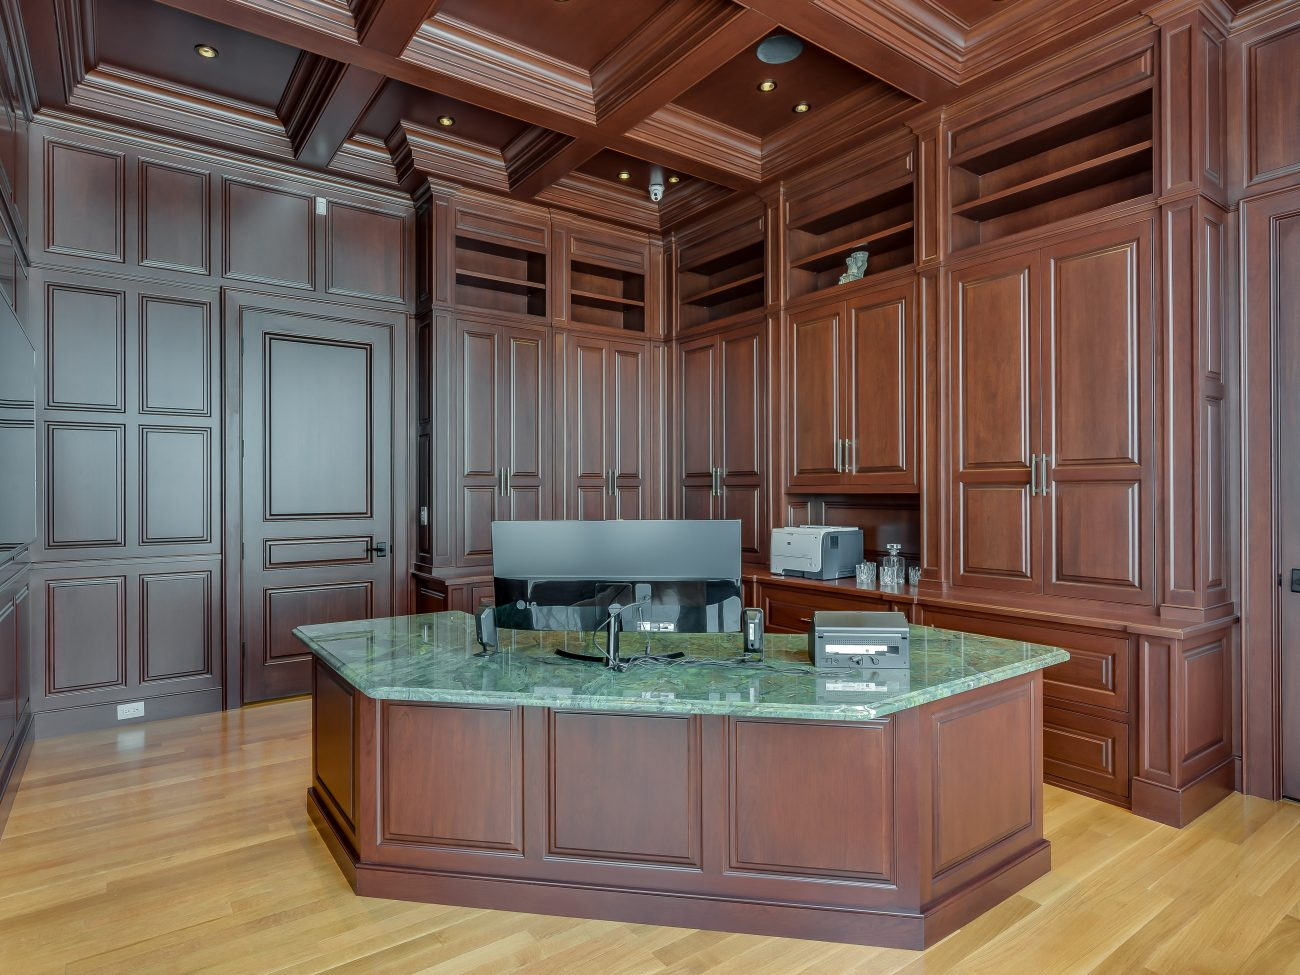 custom office cabinets, featured image 2